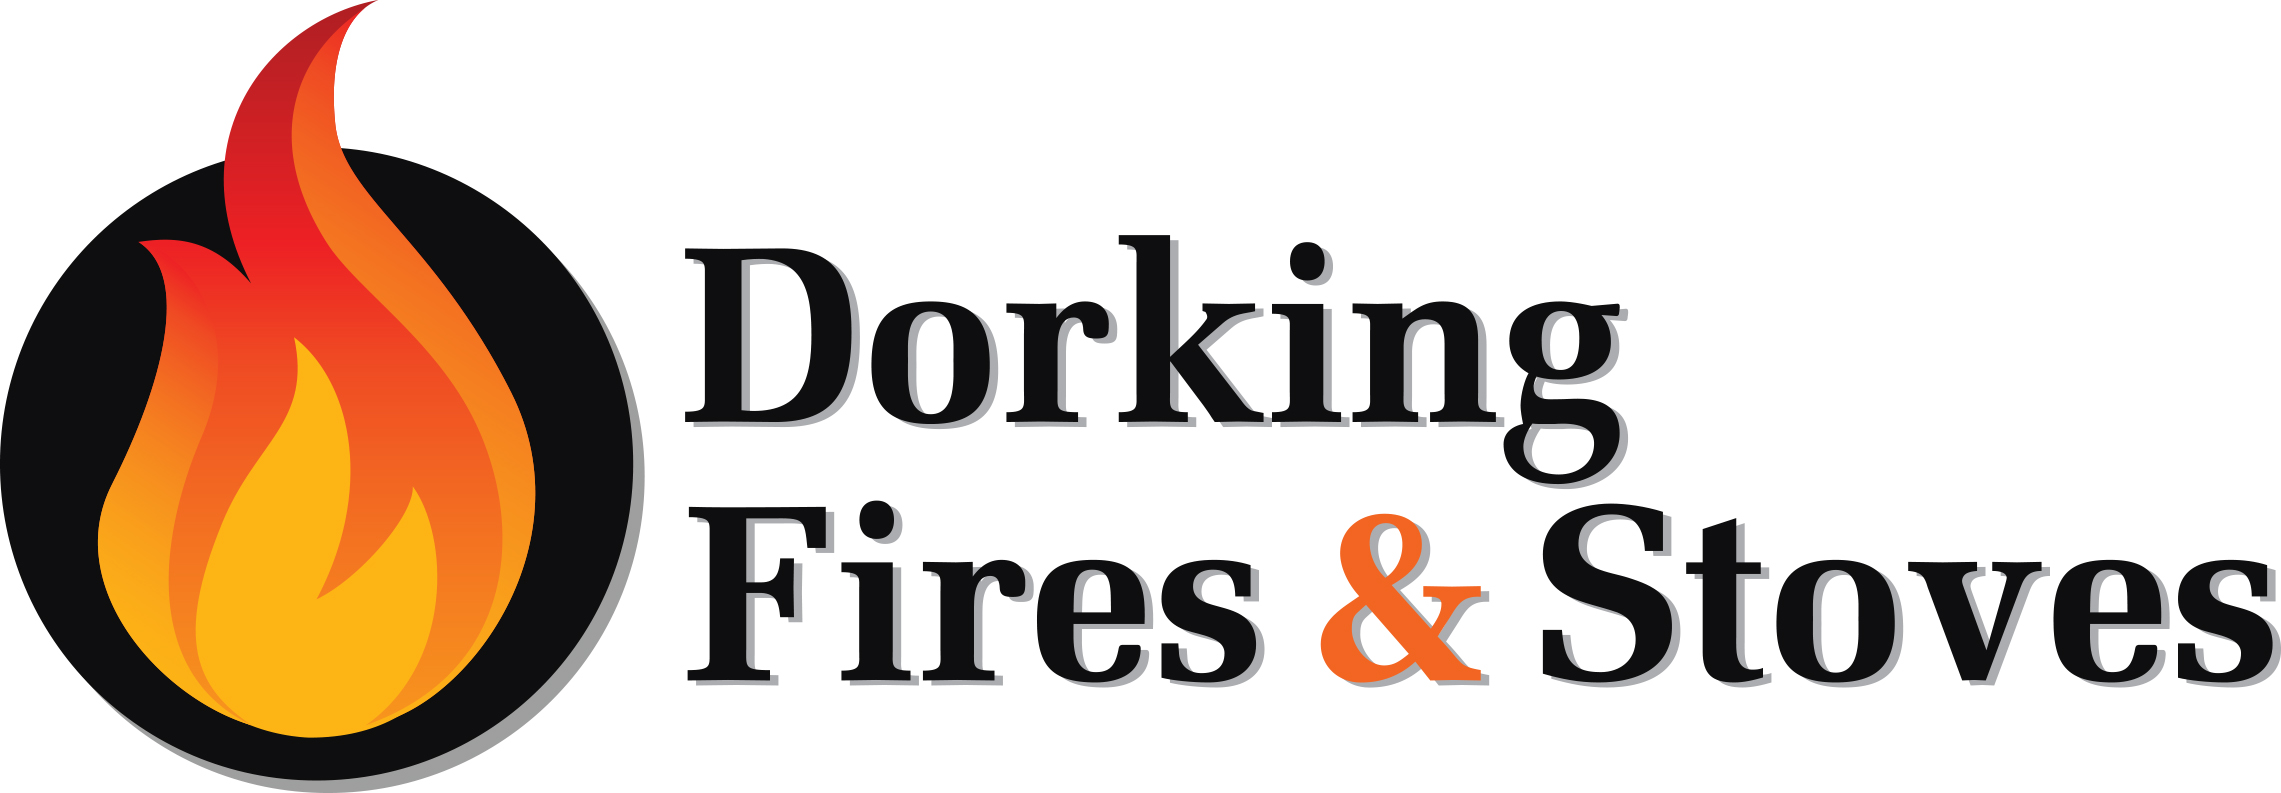 Dorking Fires & Stoves Ltd